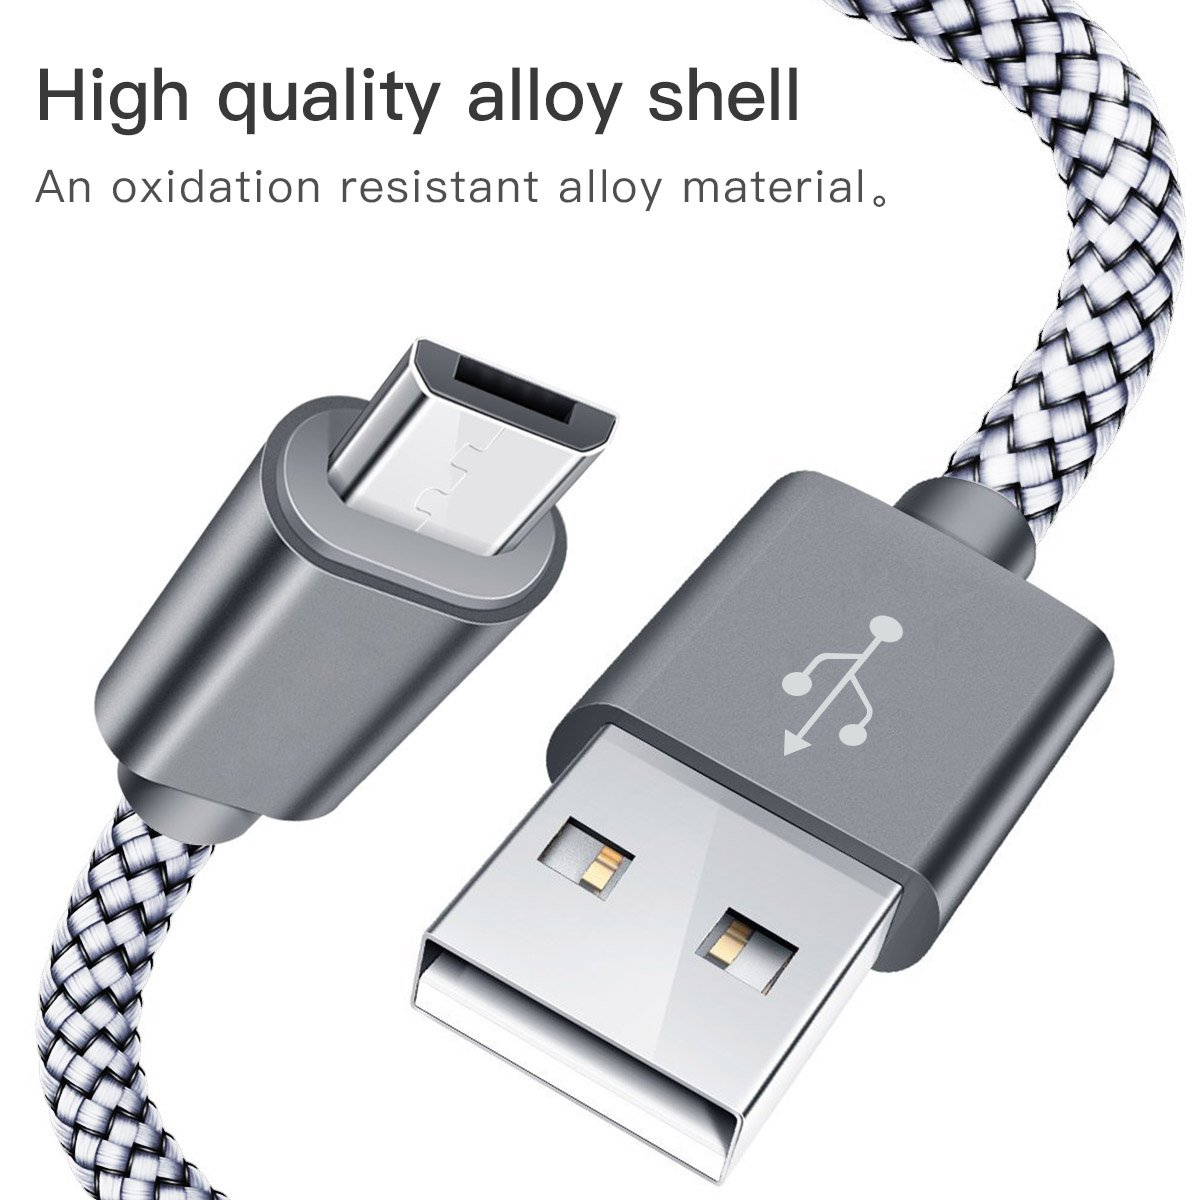 PRO OTG Cable Works for BlackBerry Z10 Right Angle Cable Connects You to Any Compatible USB Device with MicroUSB